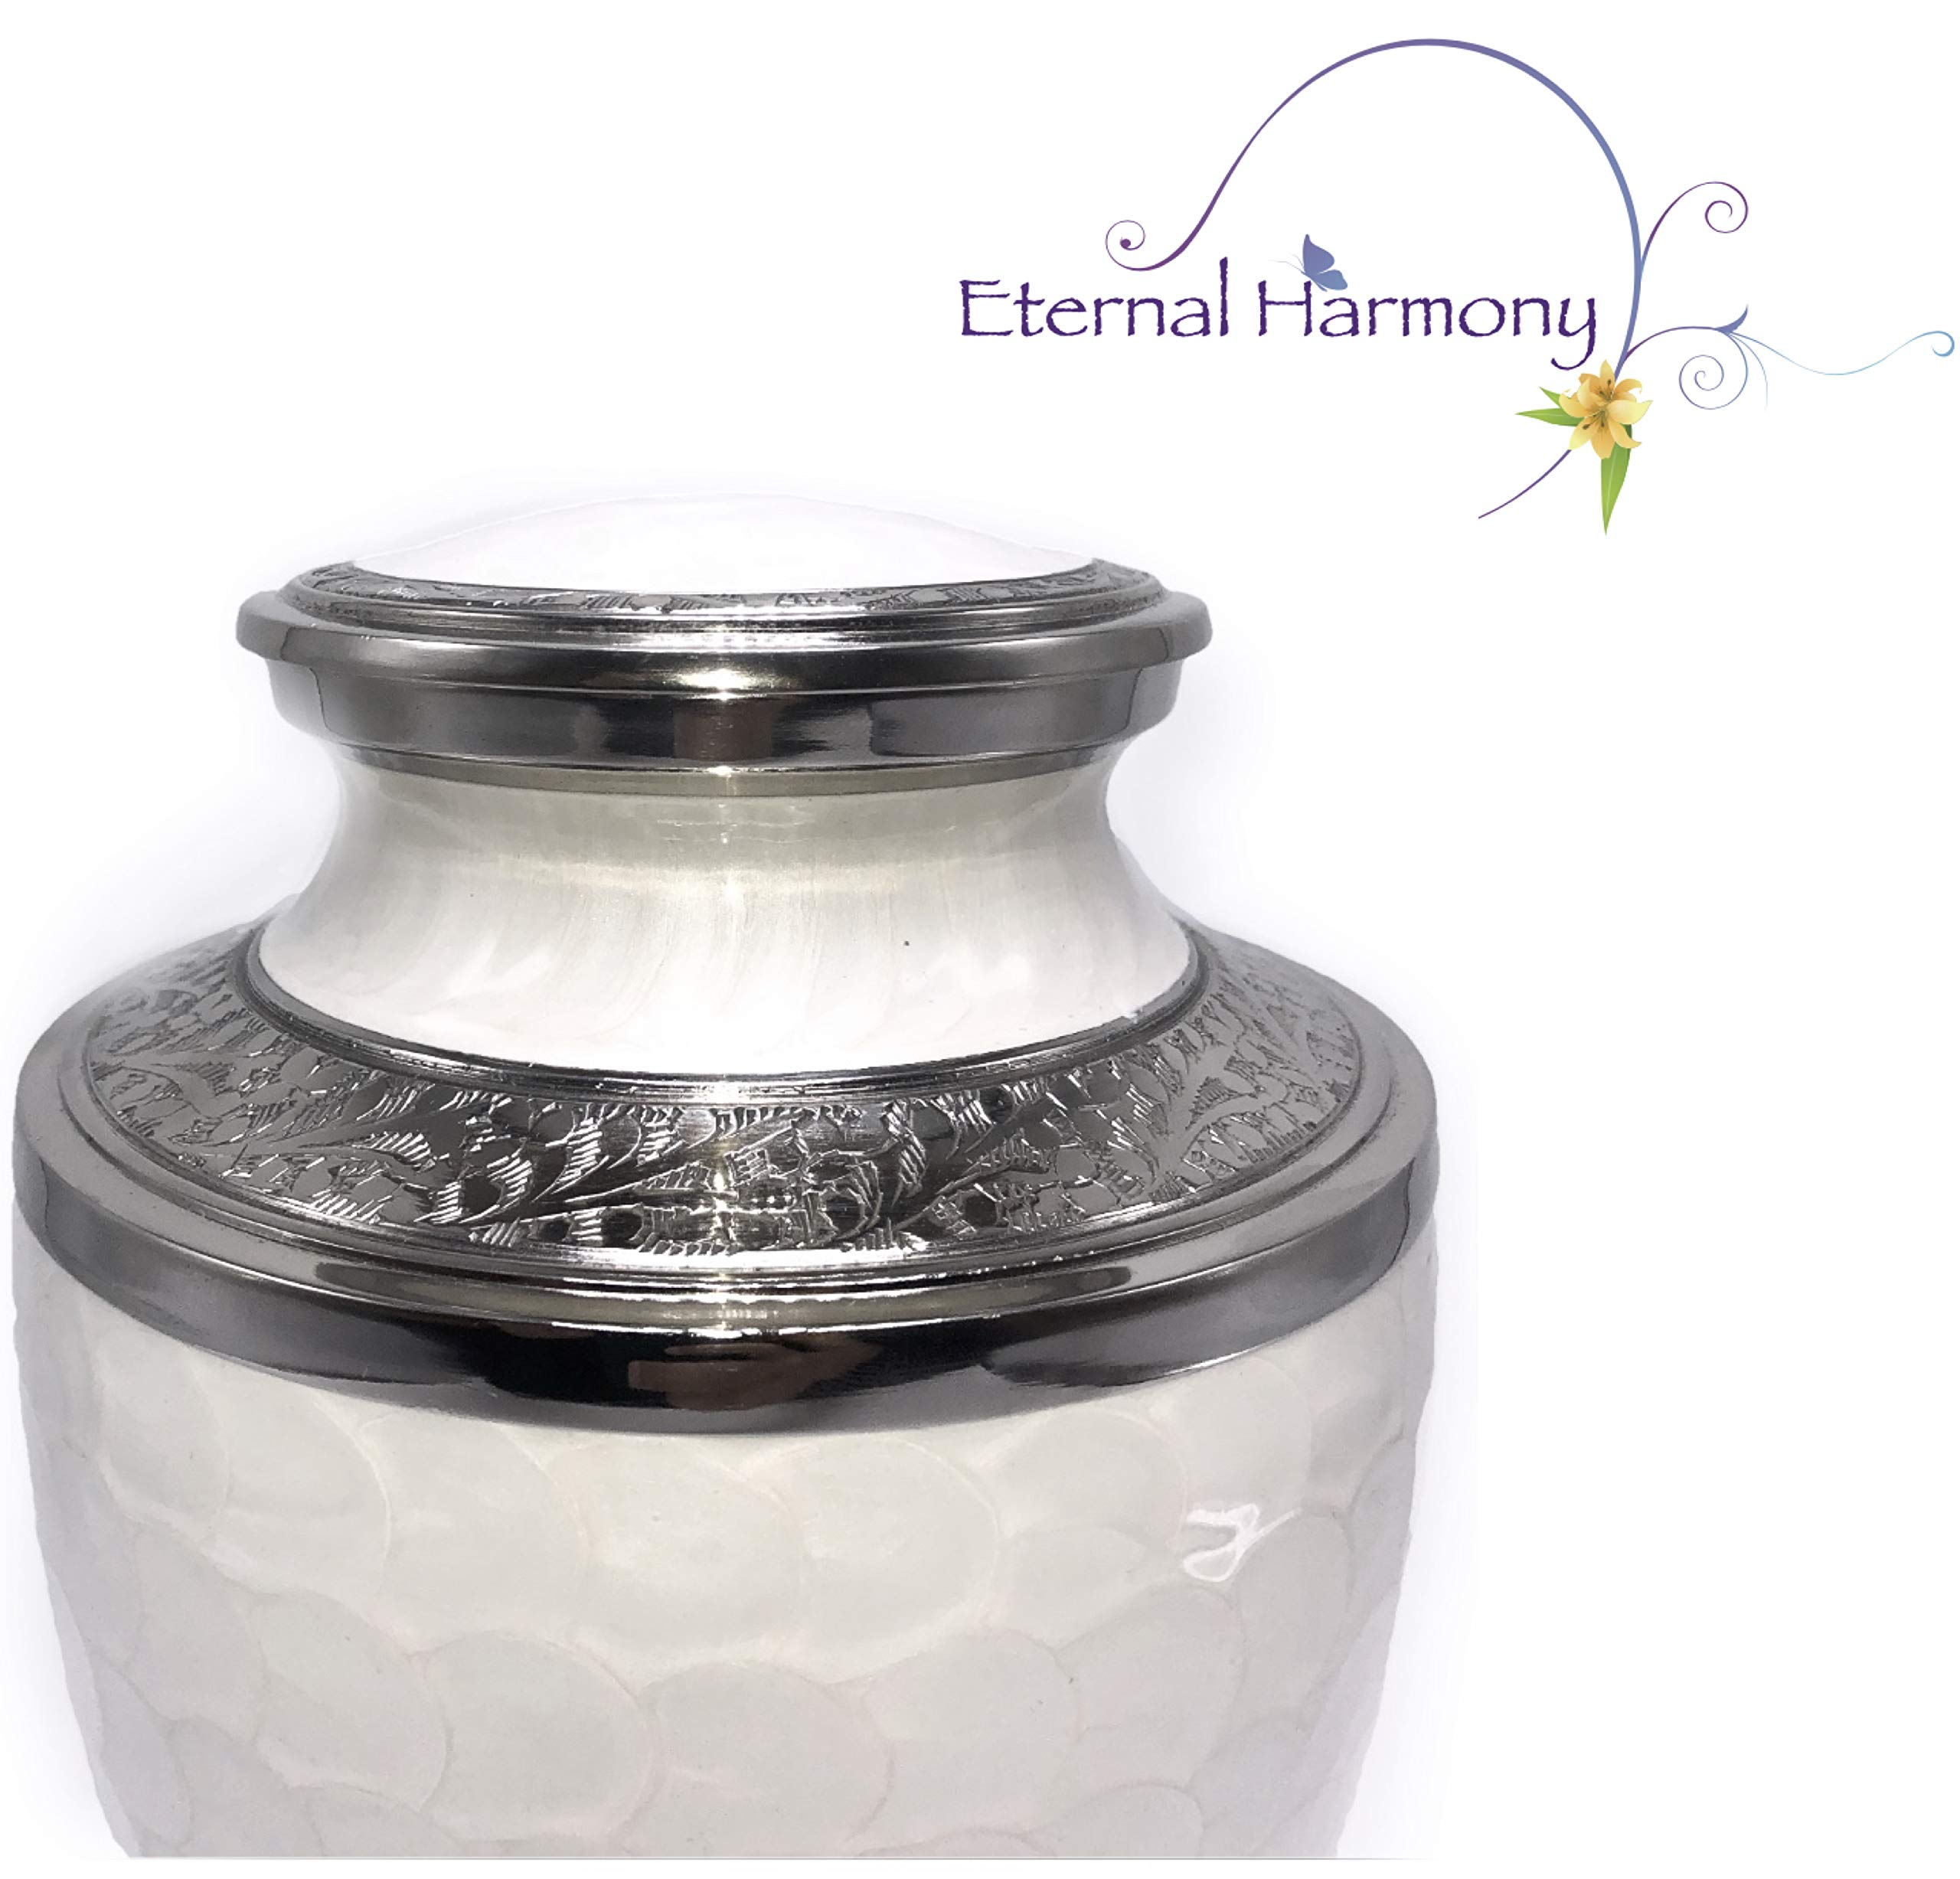 Eternal Harmony Cremation Urn for Human Ashes | Funeral Urn Carefully Handcrafted with Elegant Finishes to Honor and Remember Your Loved One | Adult Urn Large Size with Beautiful Velvet Bag by Eternal Harmony (Image #5)